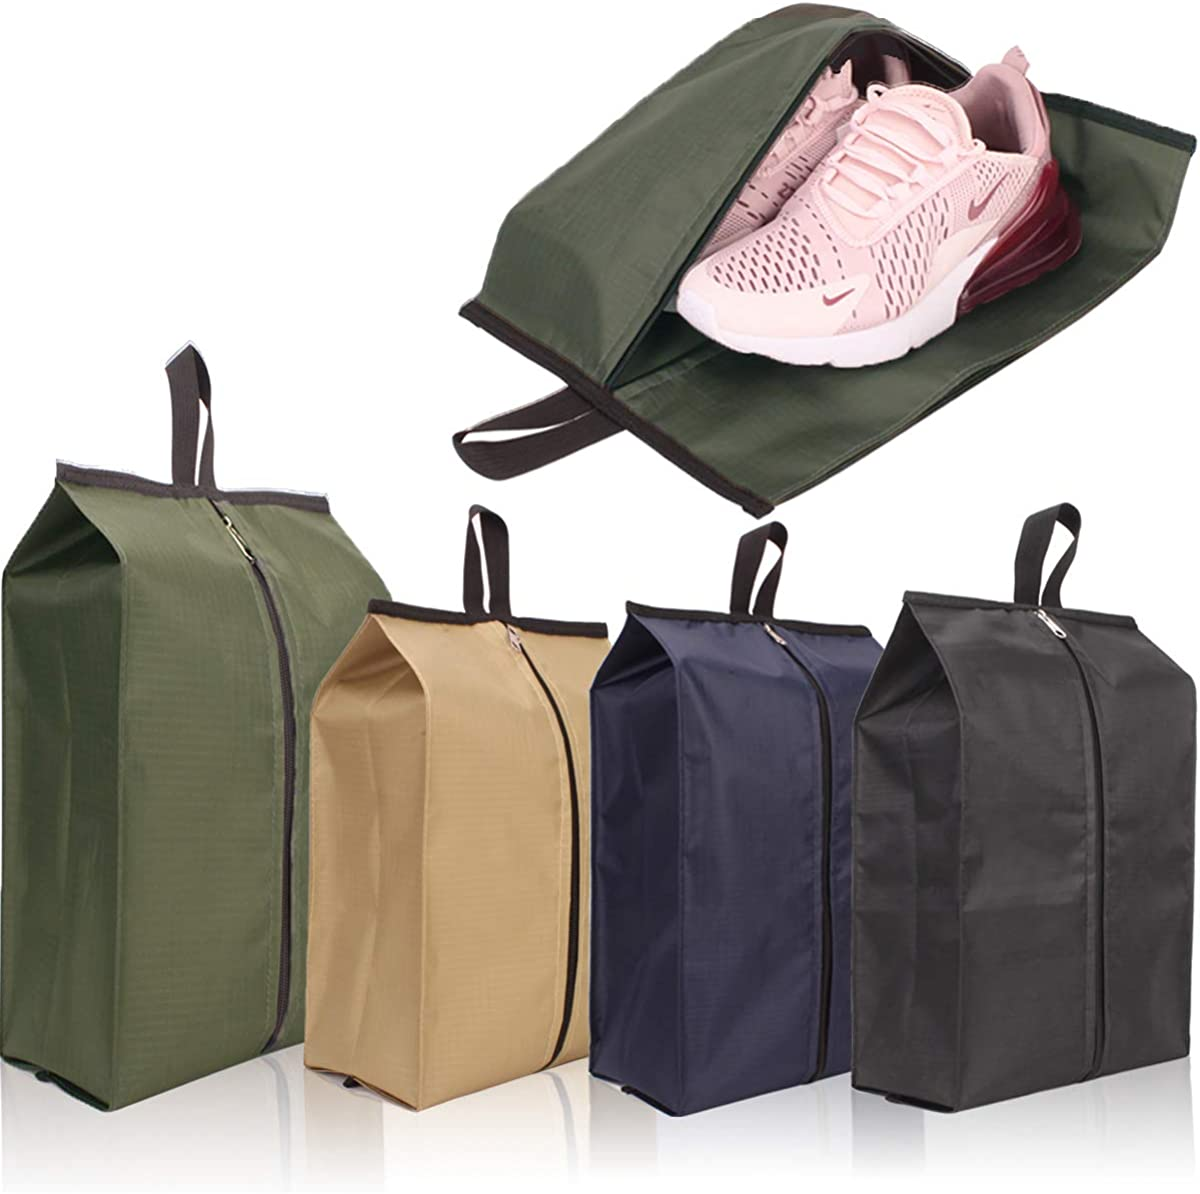 Portable Travel Shoe Organizer Bags 4 Pack Set Reusable Waterproof Durable Space Saving Storage Bags Colorful with Zipper Closure